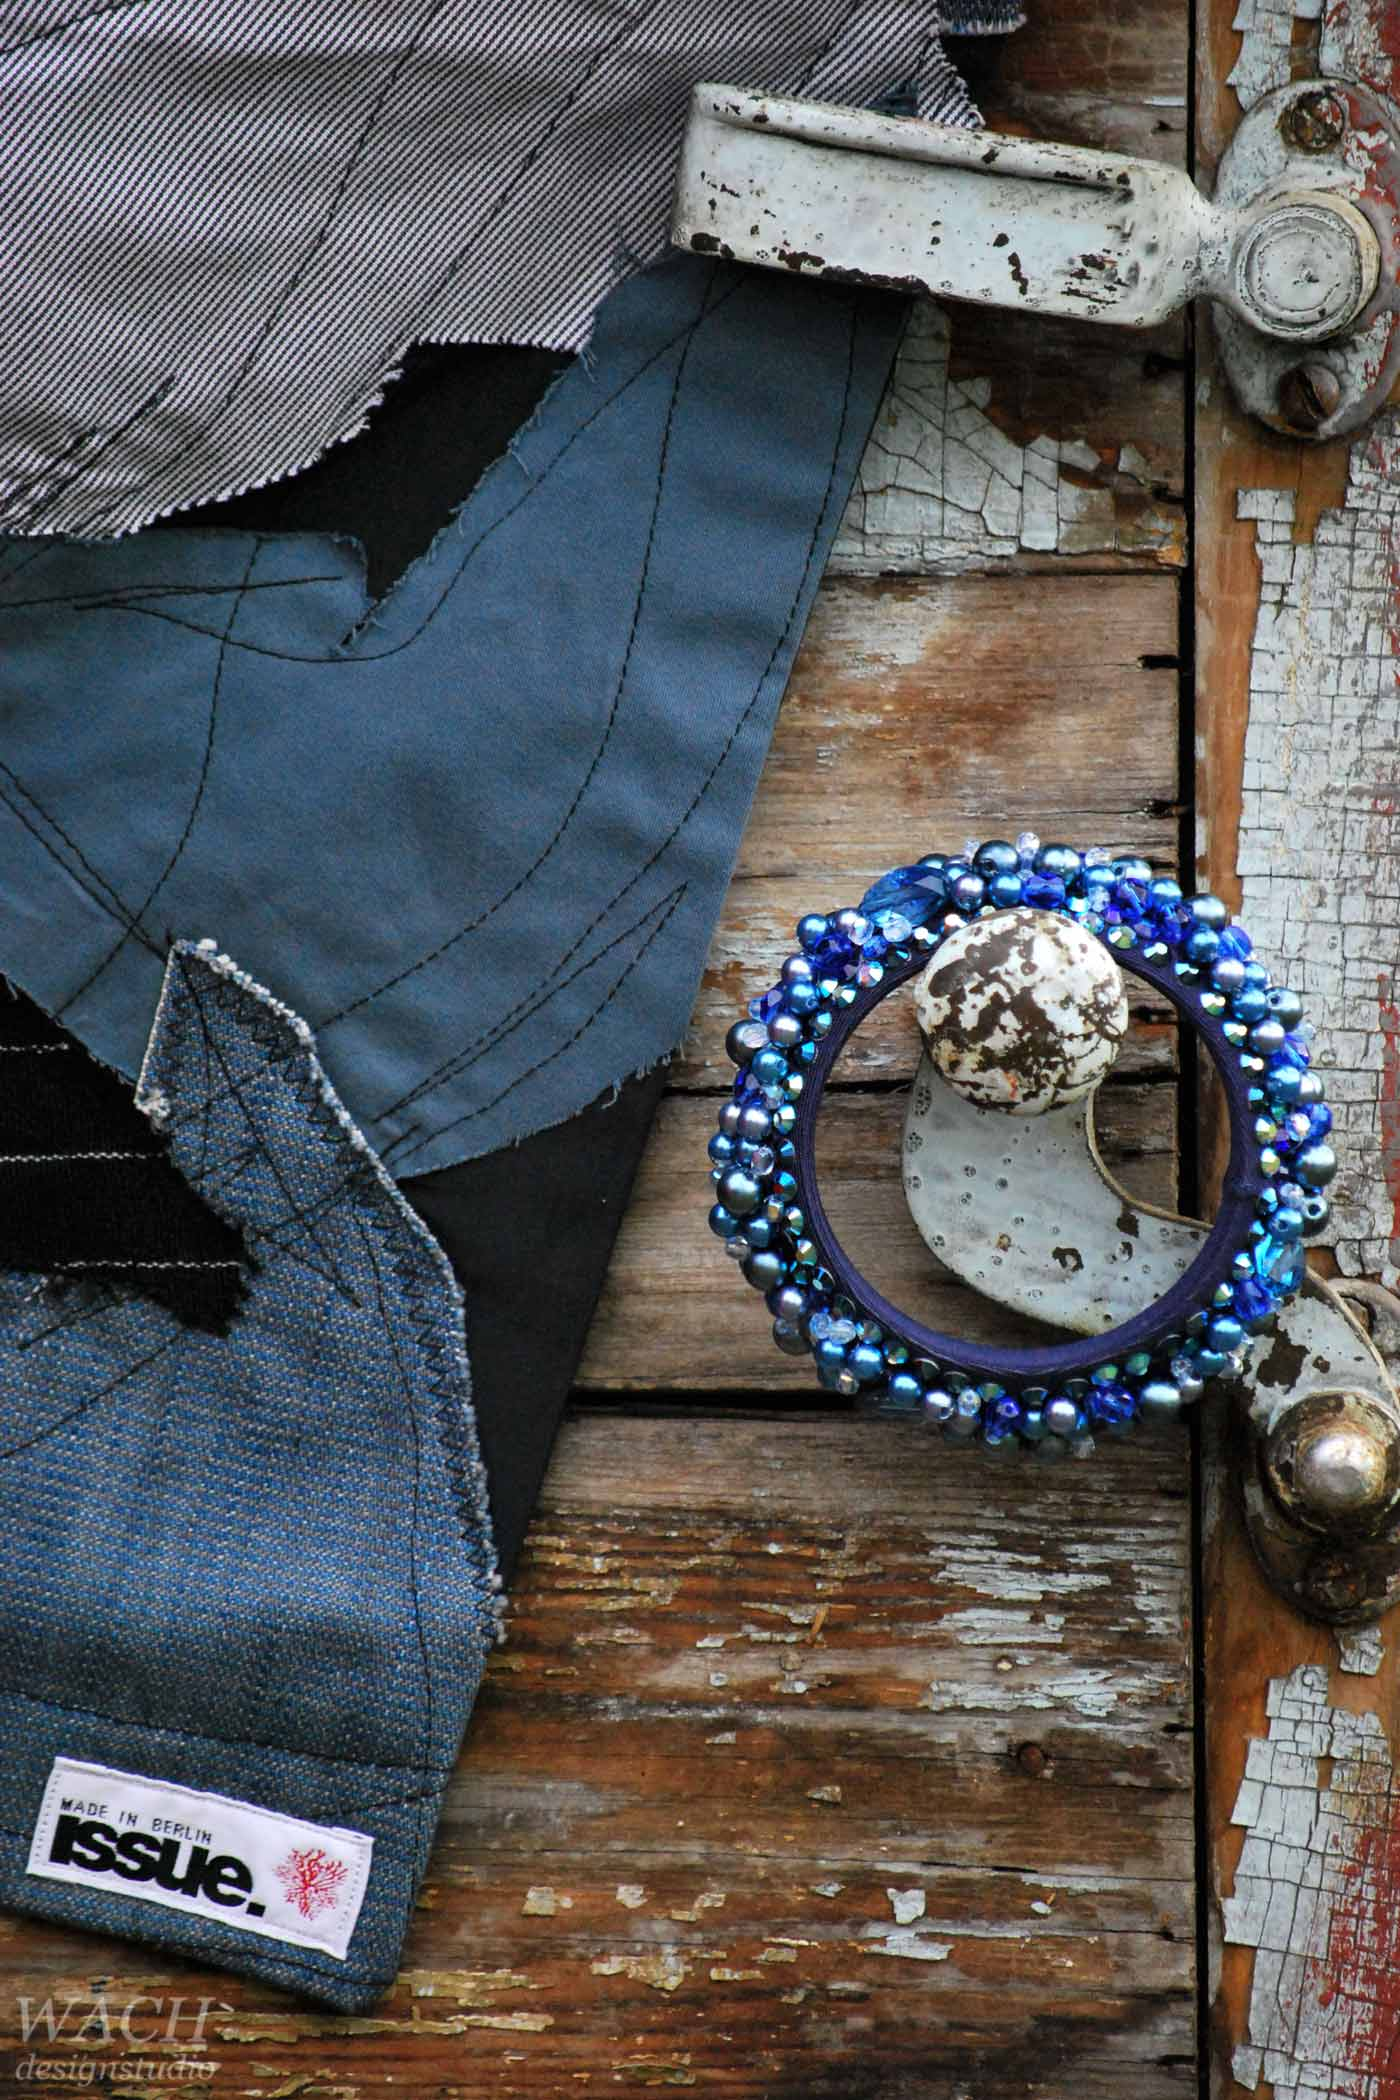 Fashion accessory by Issue Berlin - Scraf and Bracelet